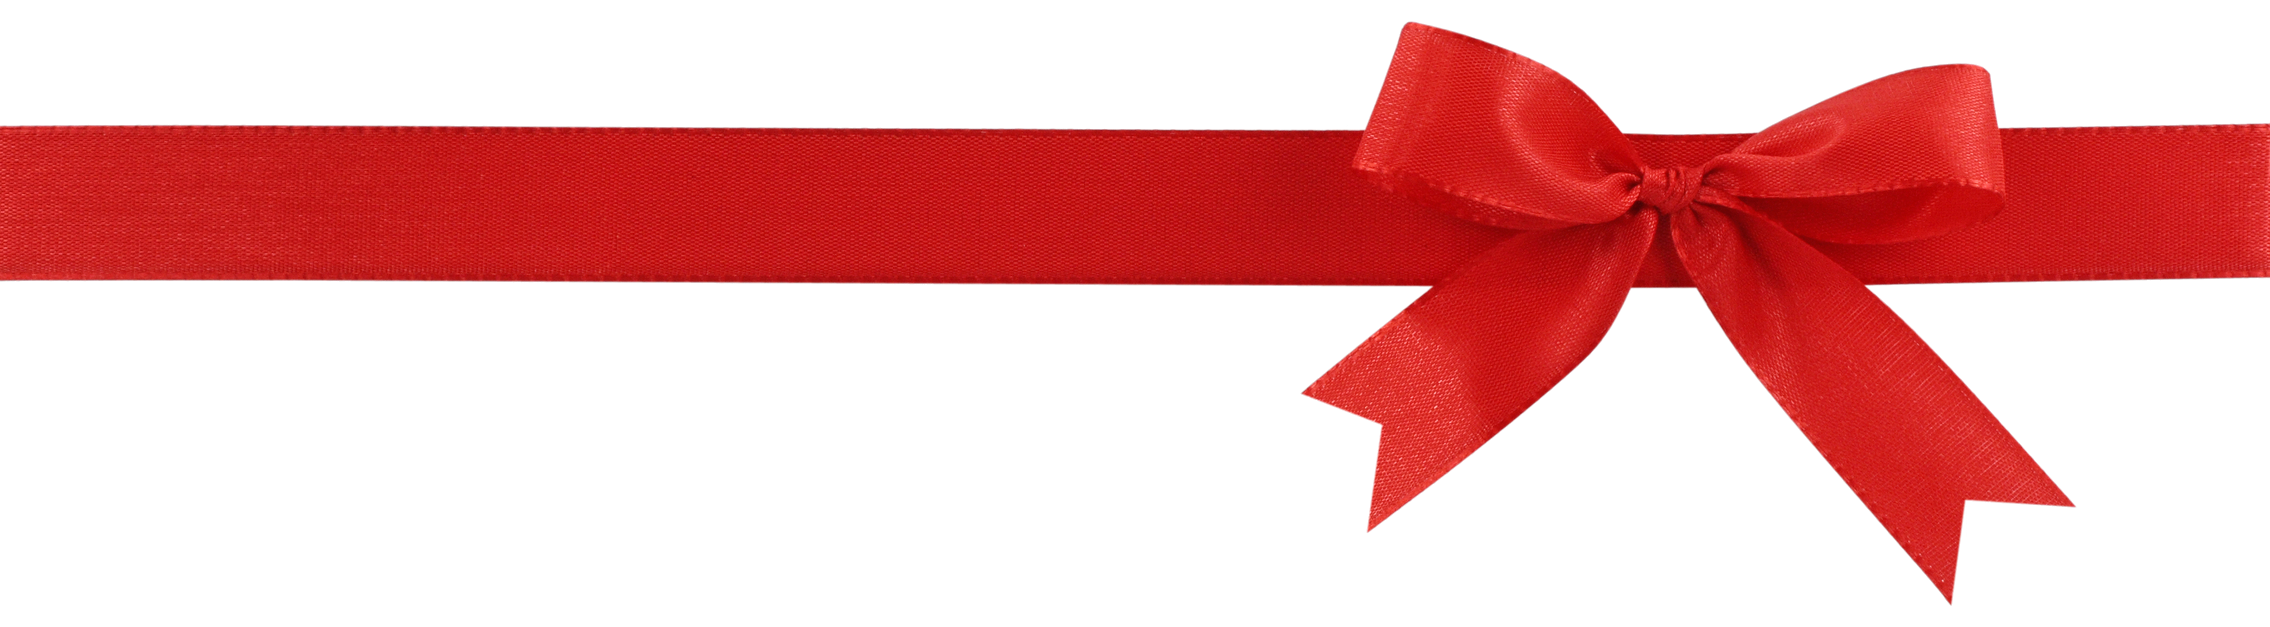 banner-transparent-red-ribbon-6.png